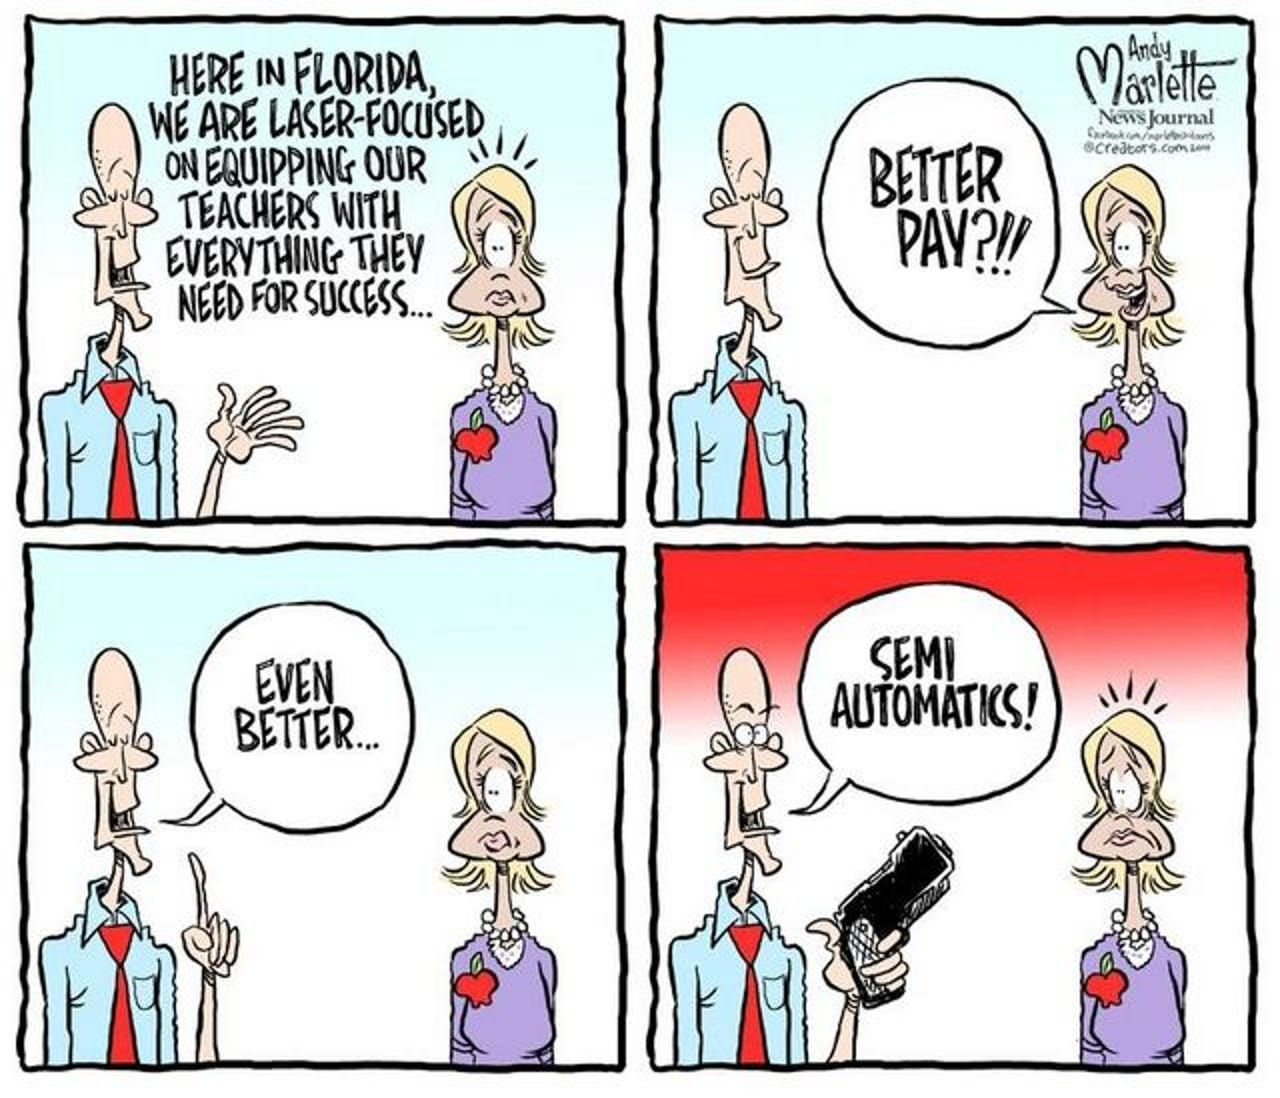 Andy Marlette, Pensacola (Fla.) News Journal